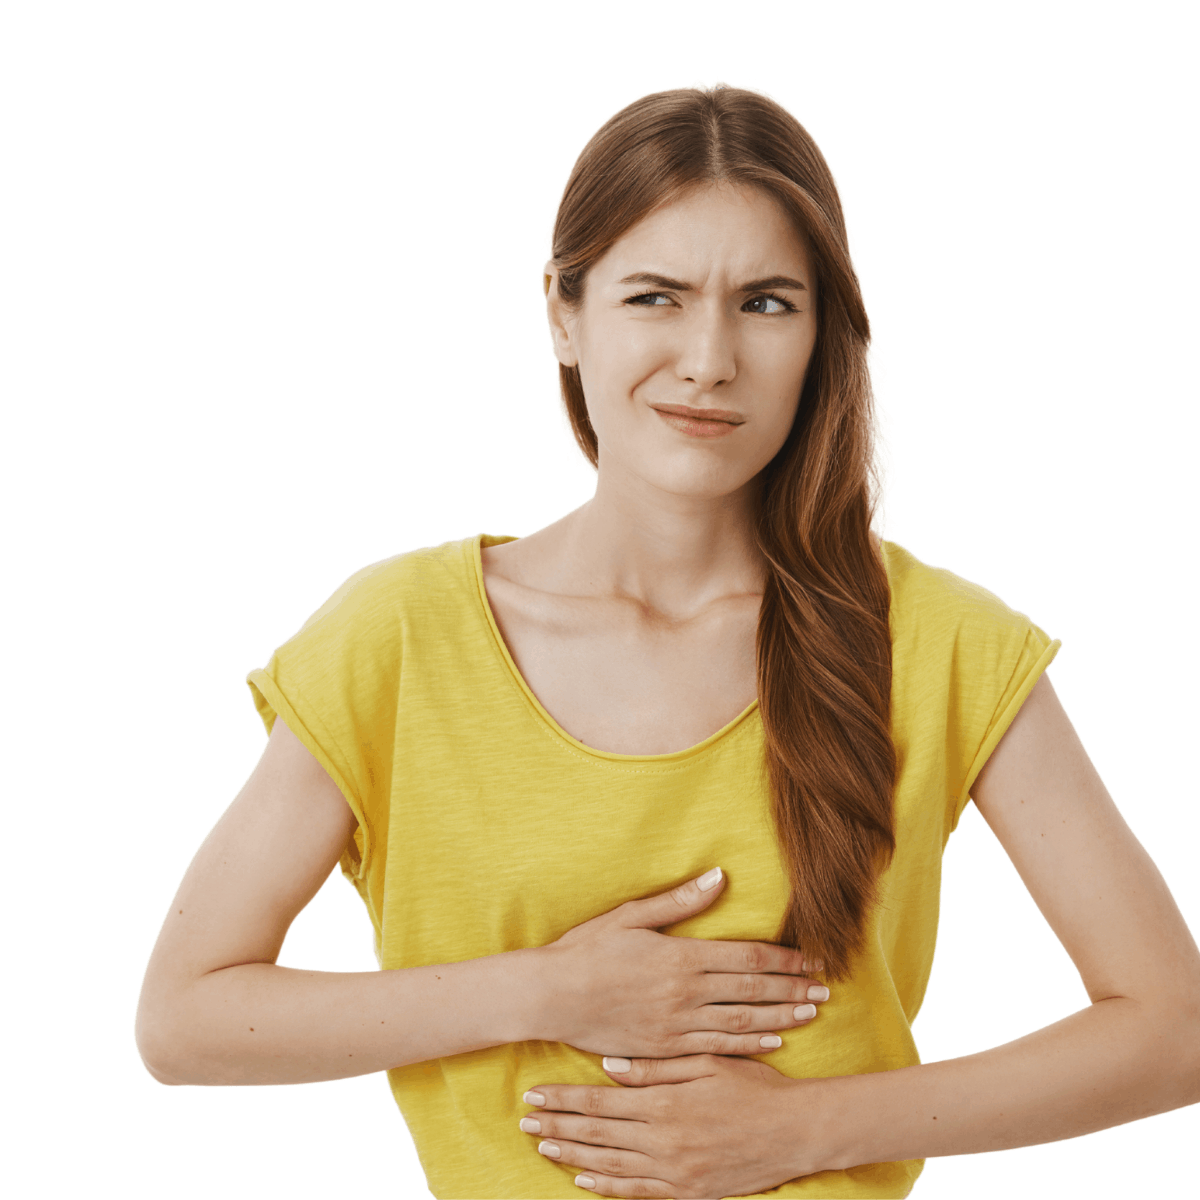 Brunette woman in yellow shirt with both hands over her stomach